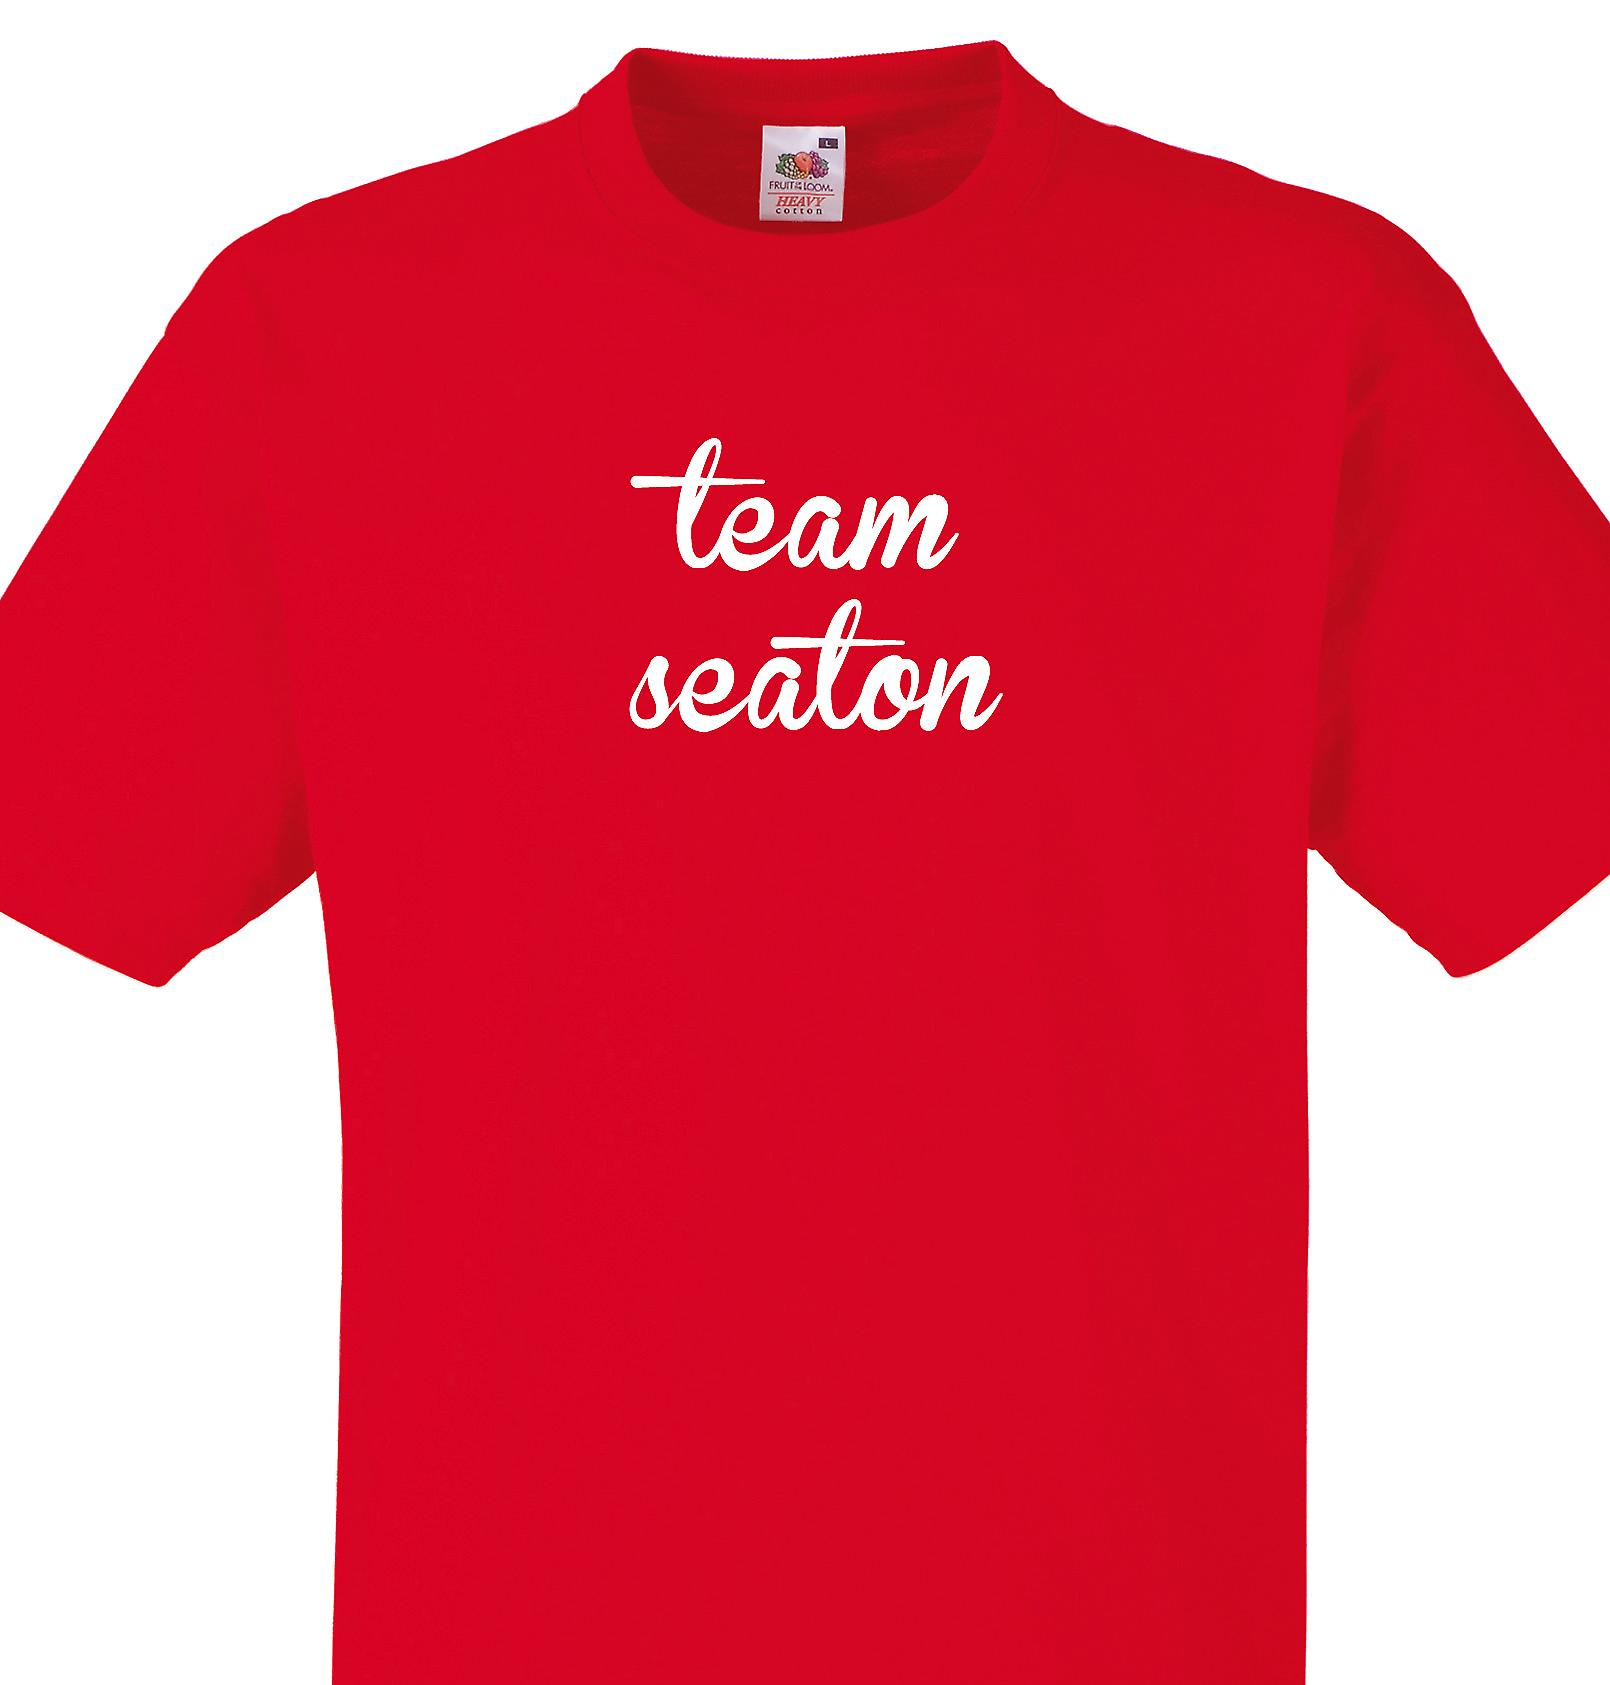 Team Seaton Red T shirt